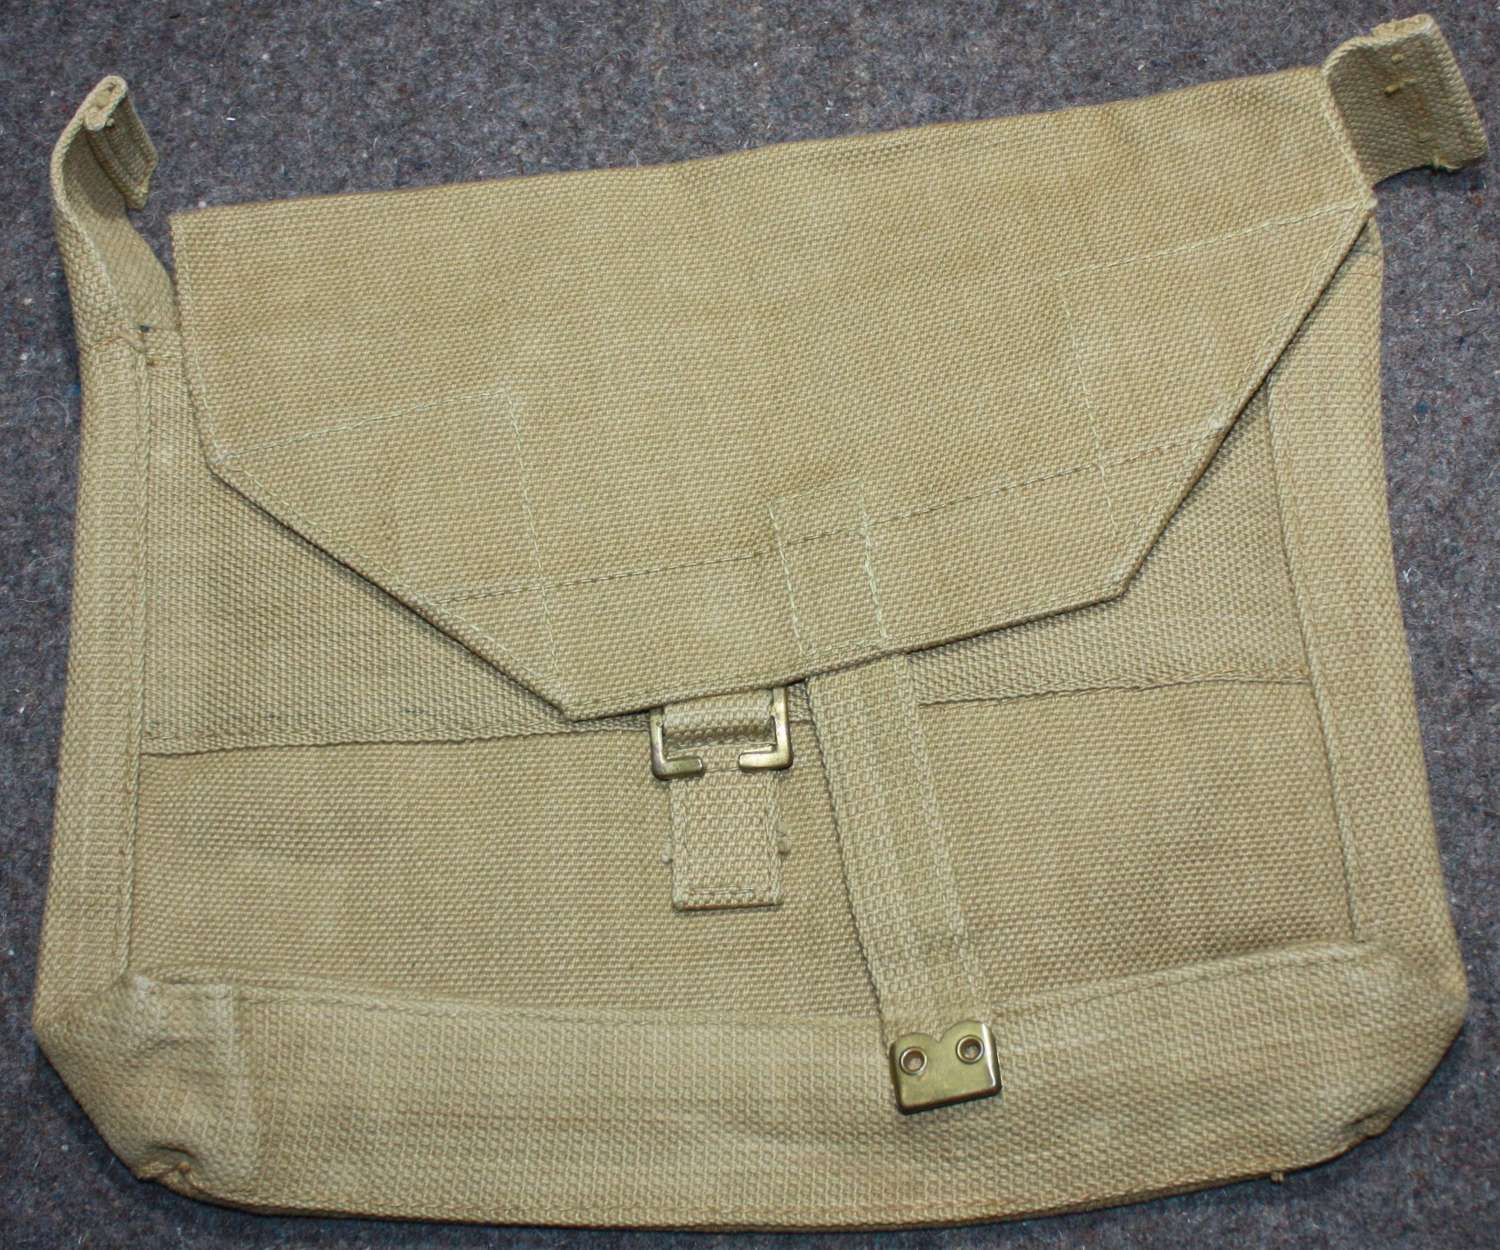 A MINT 1940 DATED OFFICERS HAVERSACK  / SIDE PACK